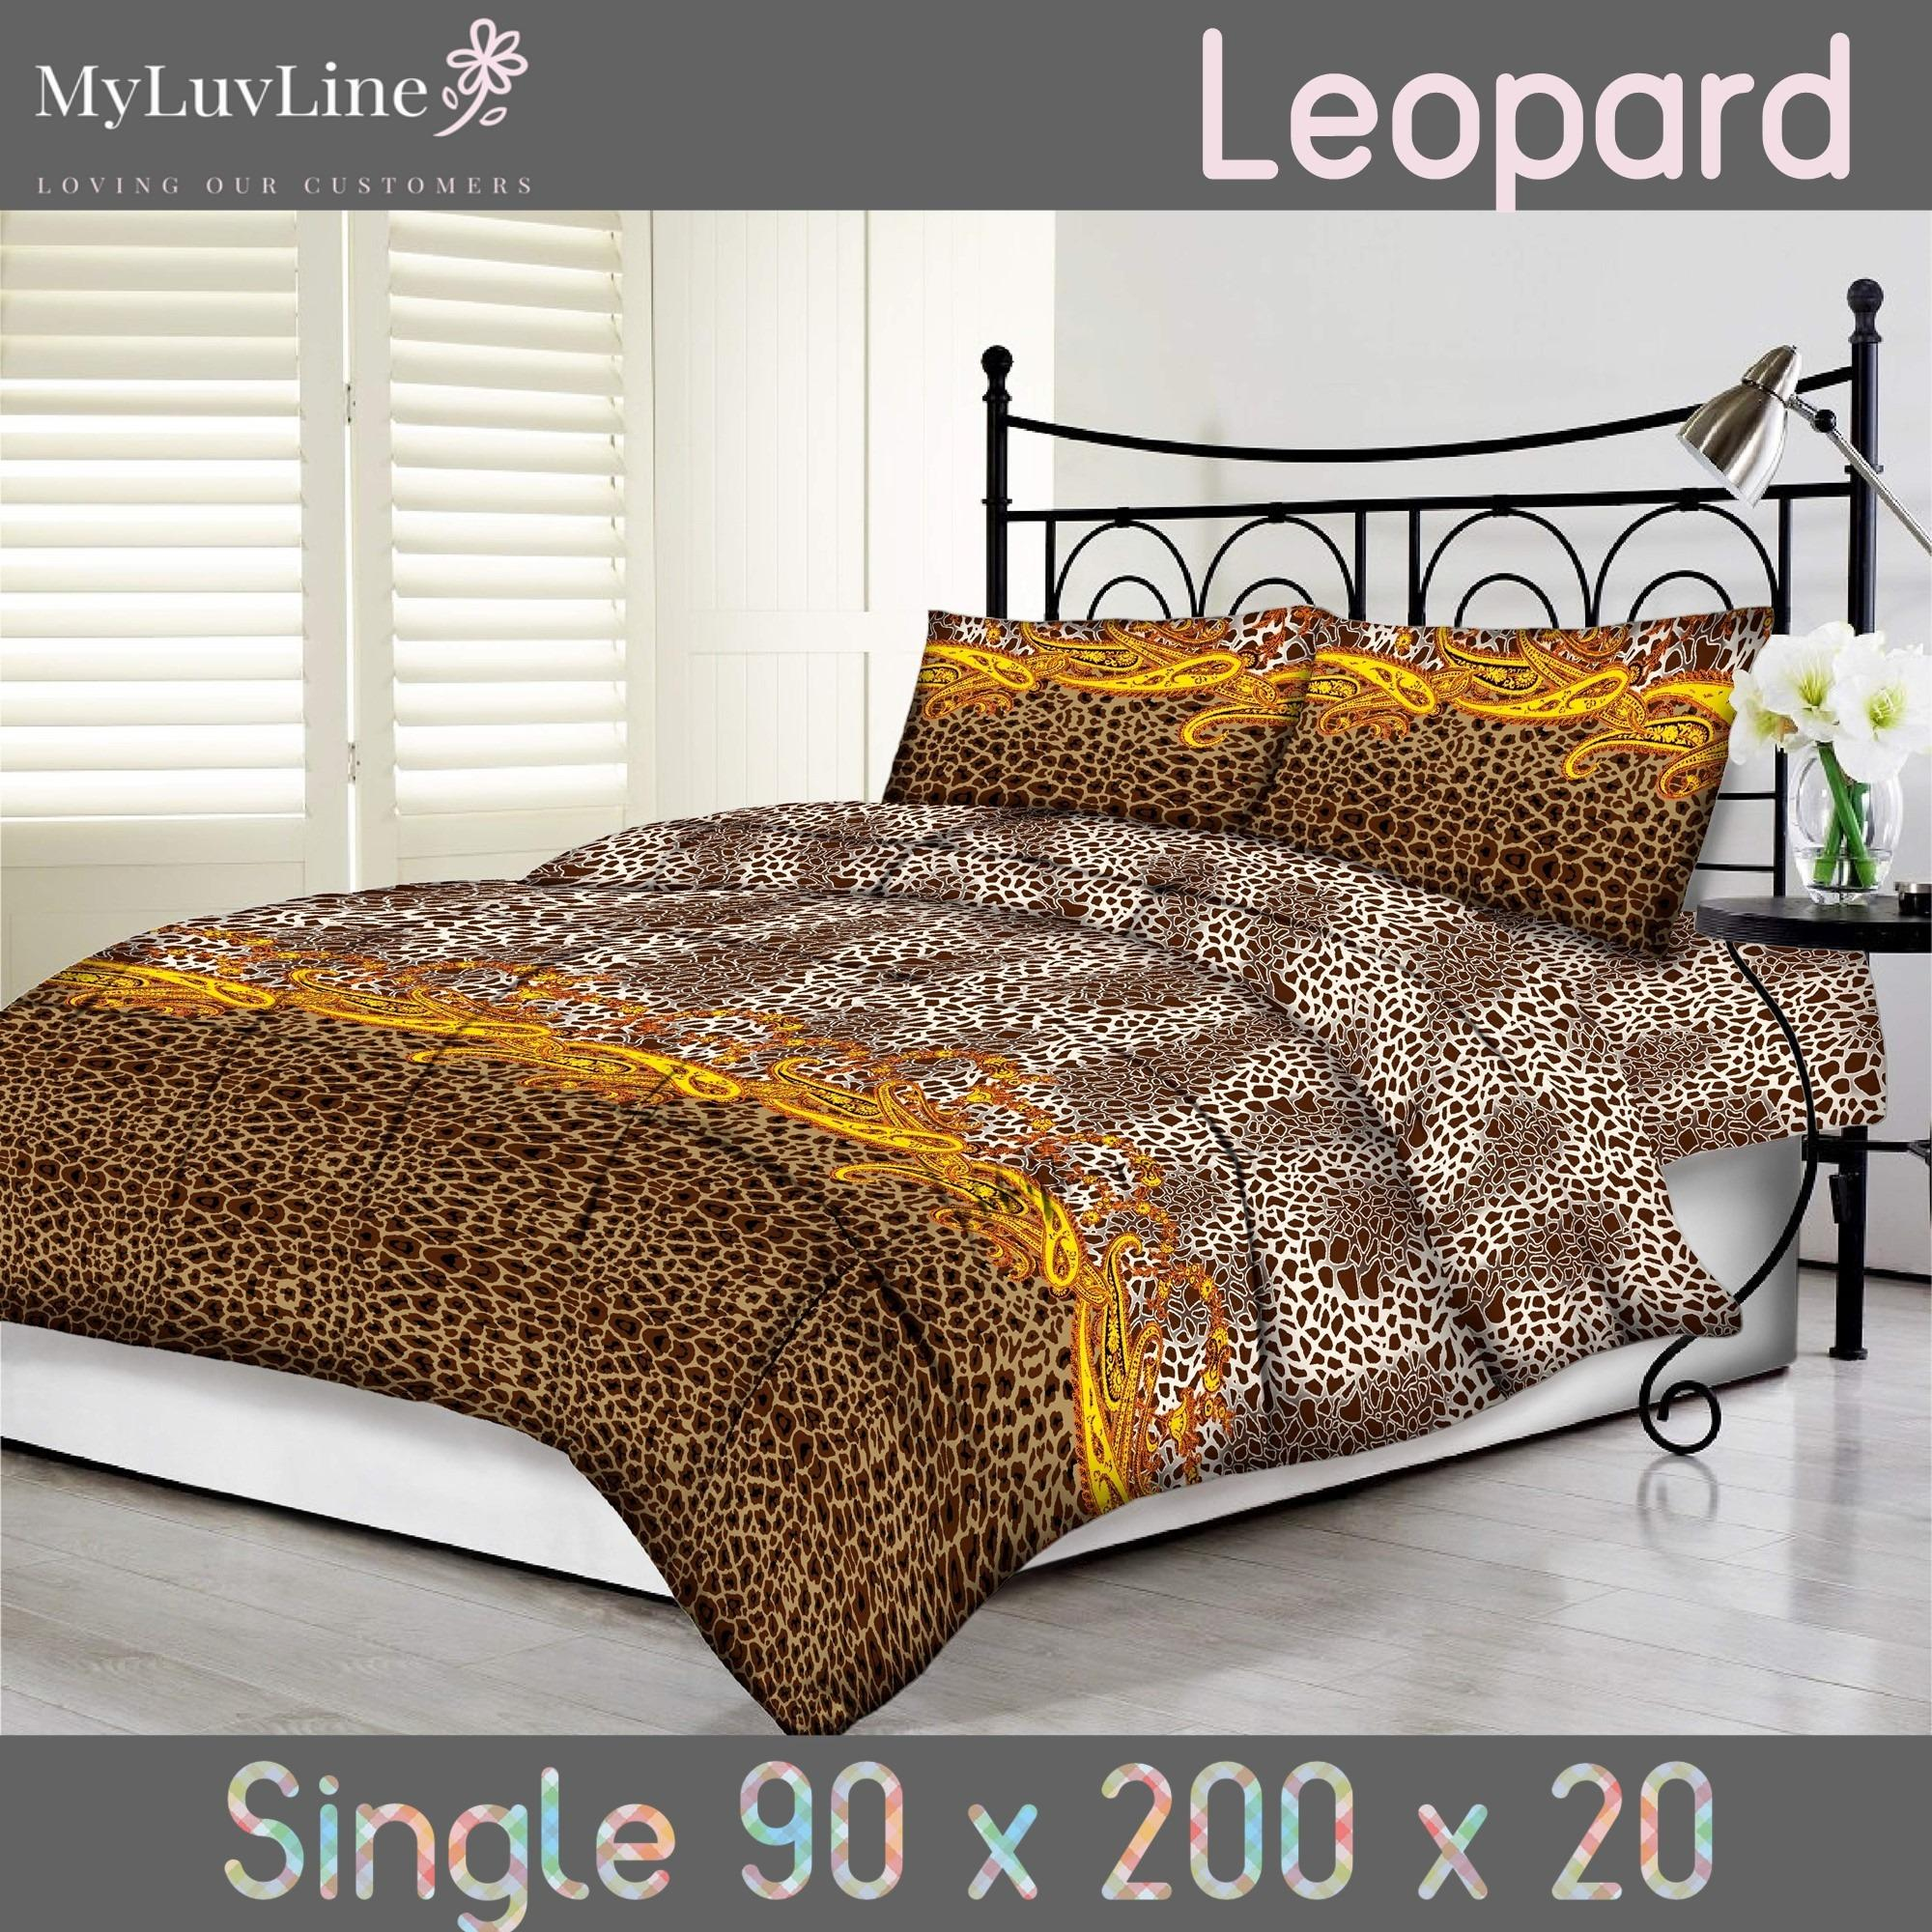 Kualitas Tommony Sprei Size 90 S D 180 Leopard Tommony